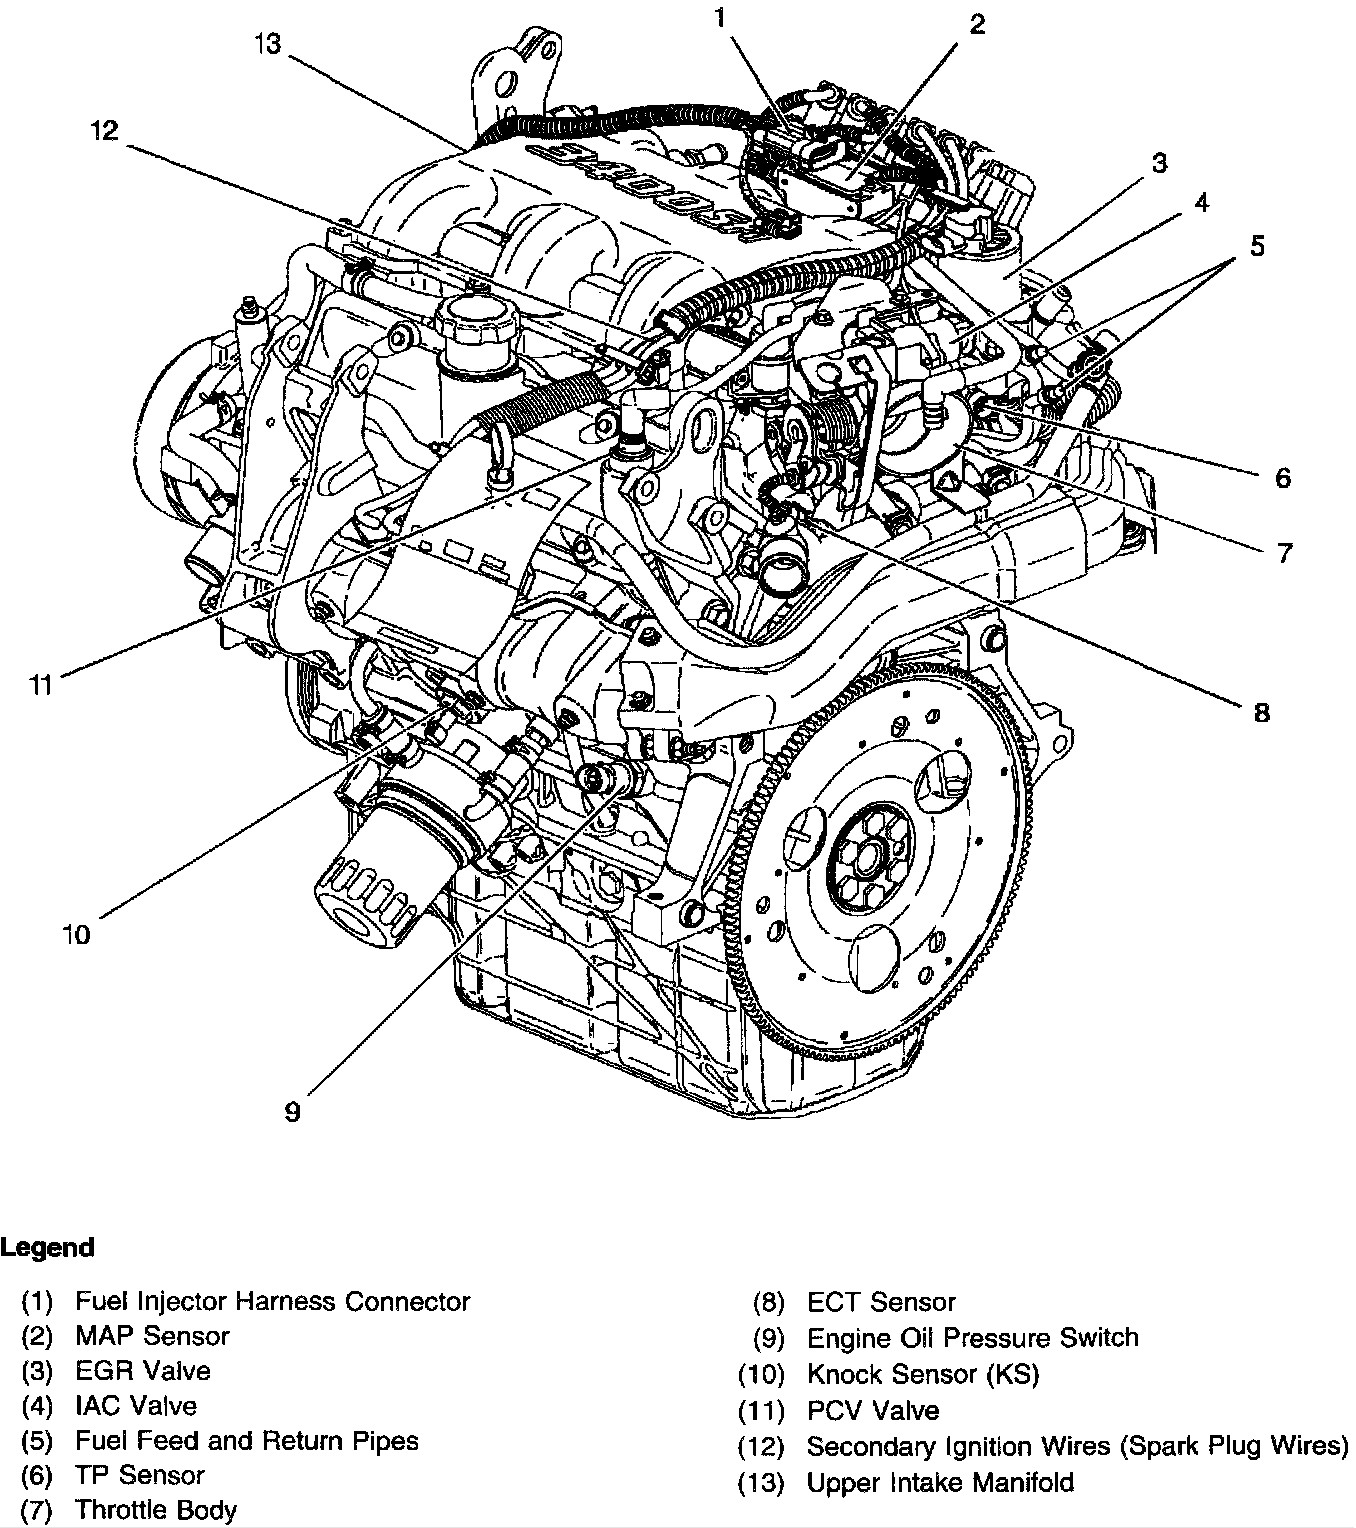 Monte Carlo 3 4l Gm V6 Engine Diagram Guide And Troubleshooting Of Wiring Library Rh 44 Skriptoase De 43l 3800